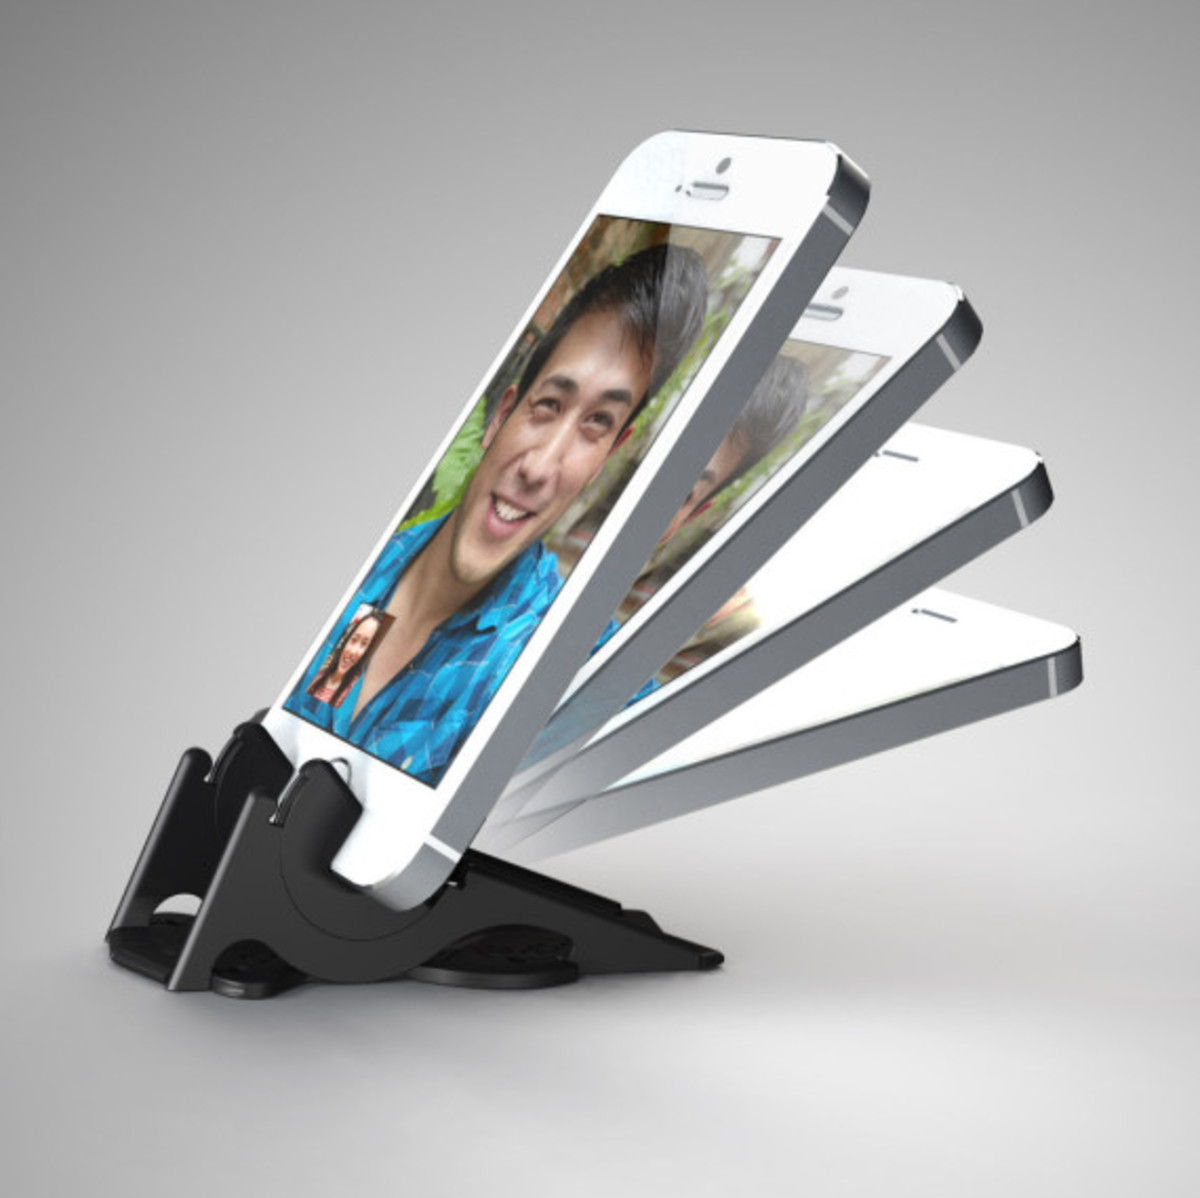 Pocket Tripod - Wallet-Sized Adjustable Stand for Apple iPhone - 5